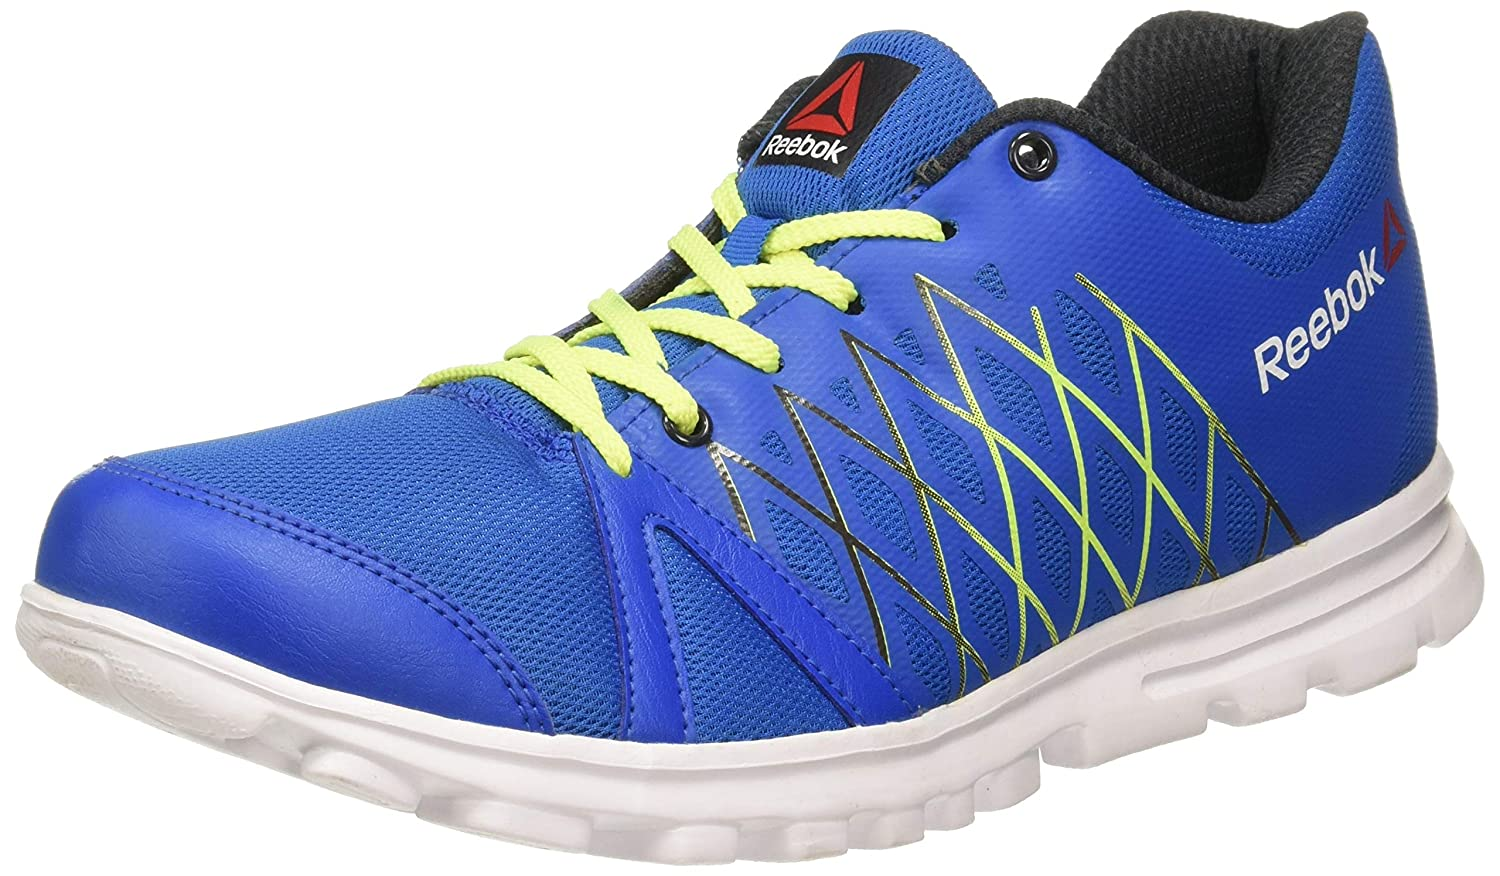 Reebok Men s Pulse Run Running Shoes  Buy Online at Low Prices in India -  Amazon.in 0ea461a38